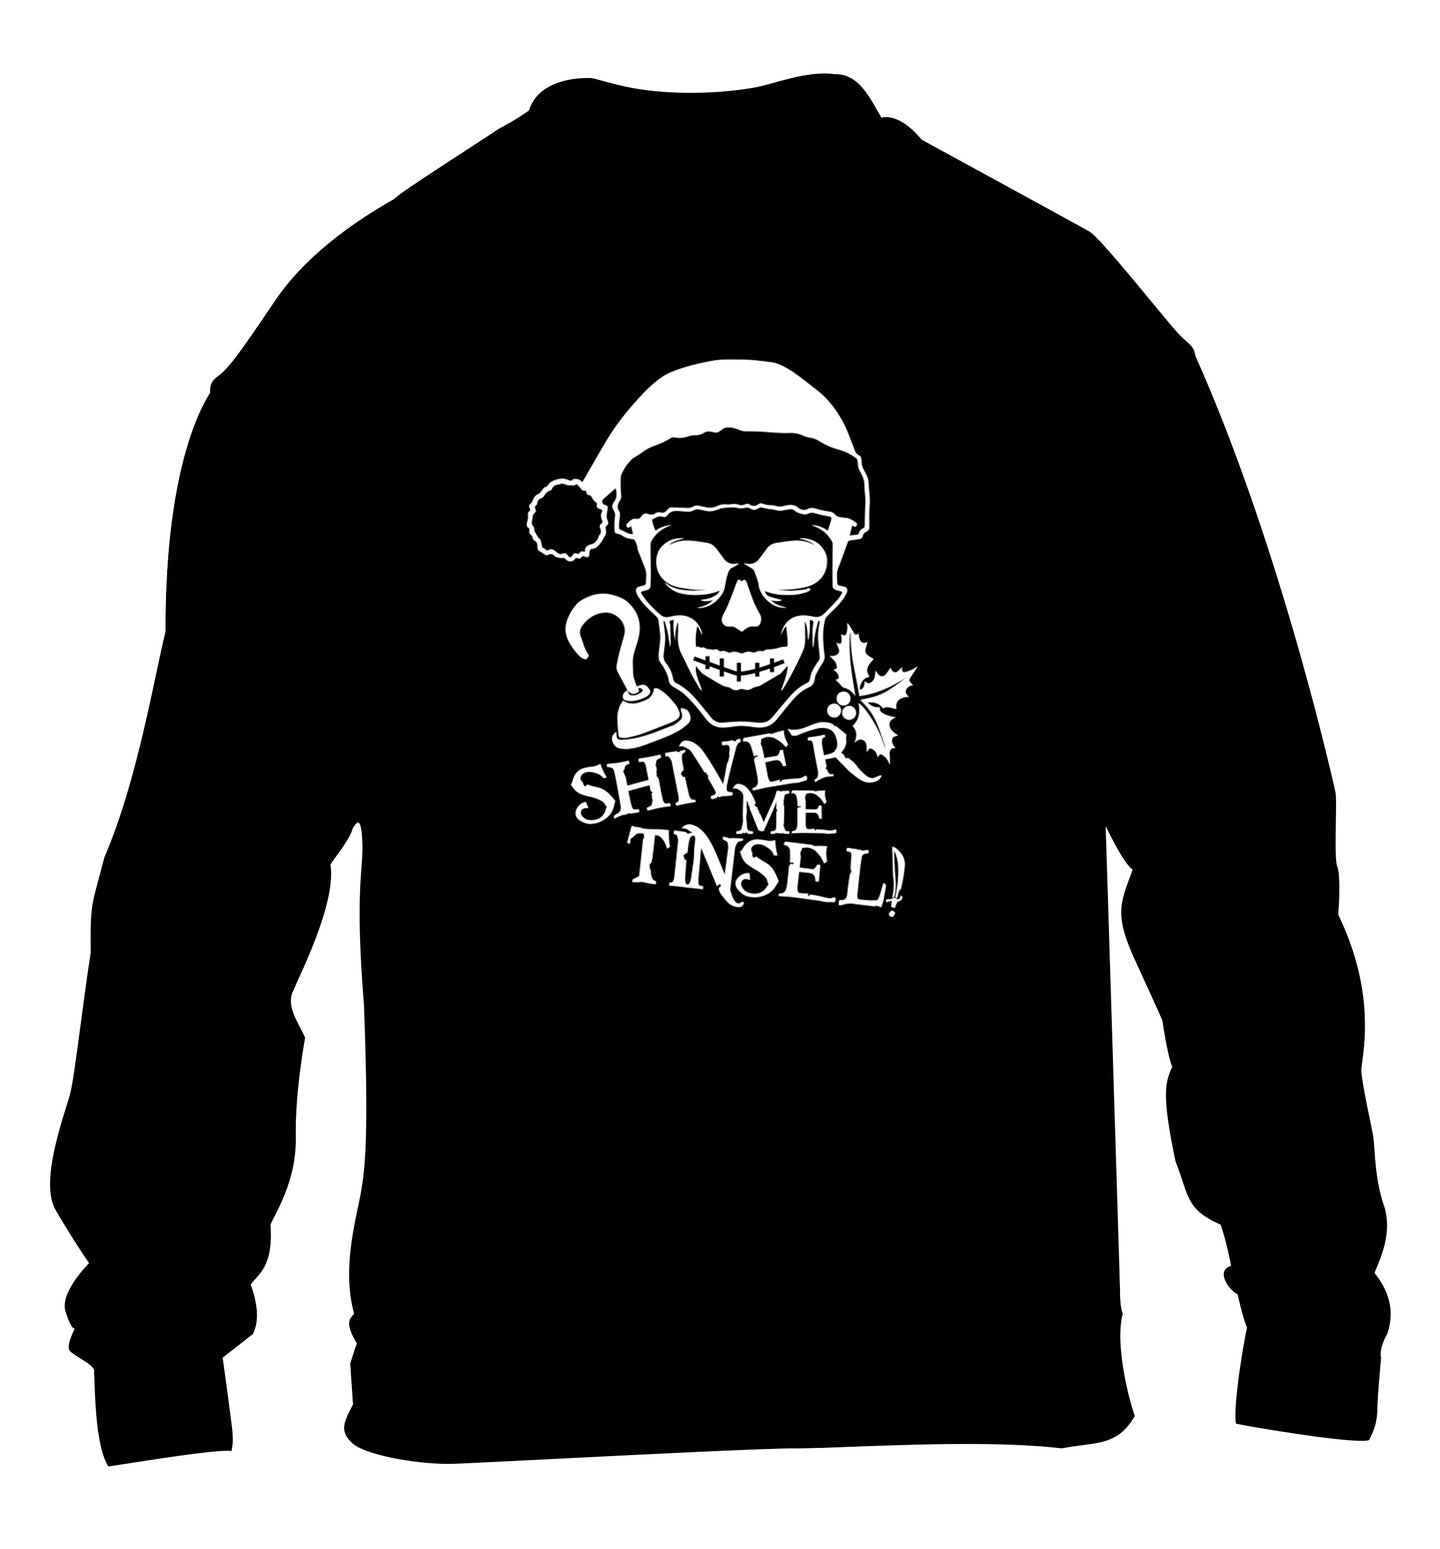 Shiver me tinsel children's black sweater 12-14 Years